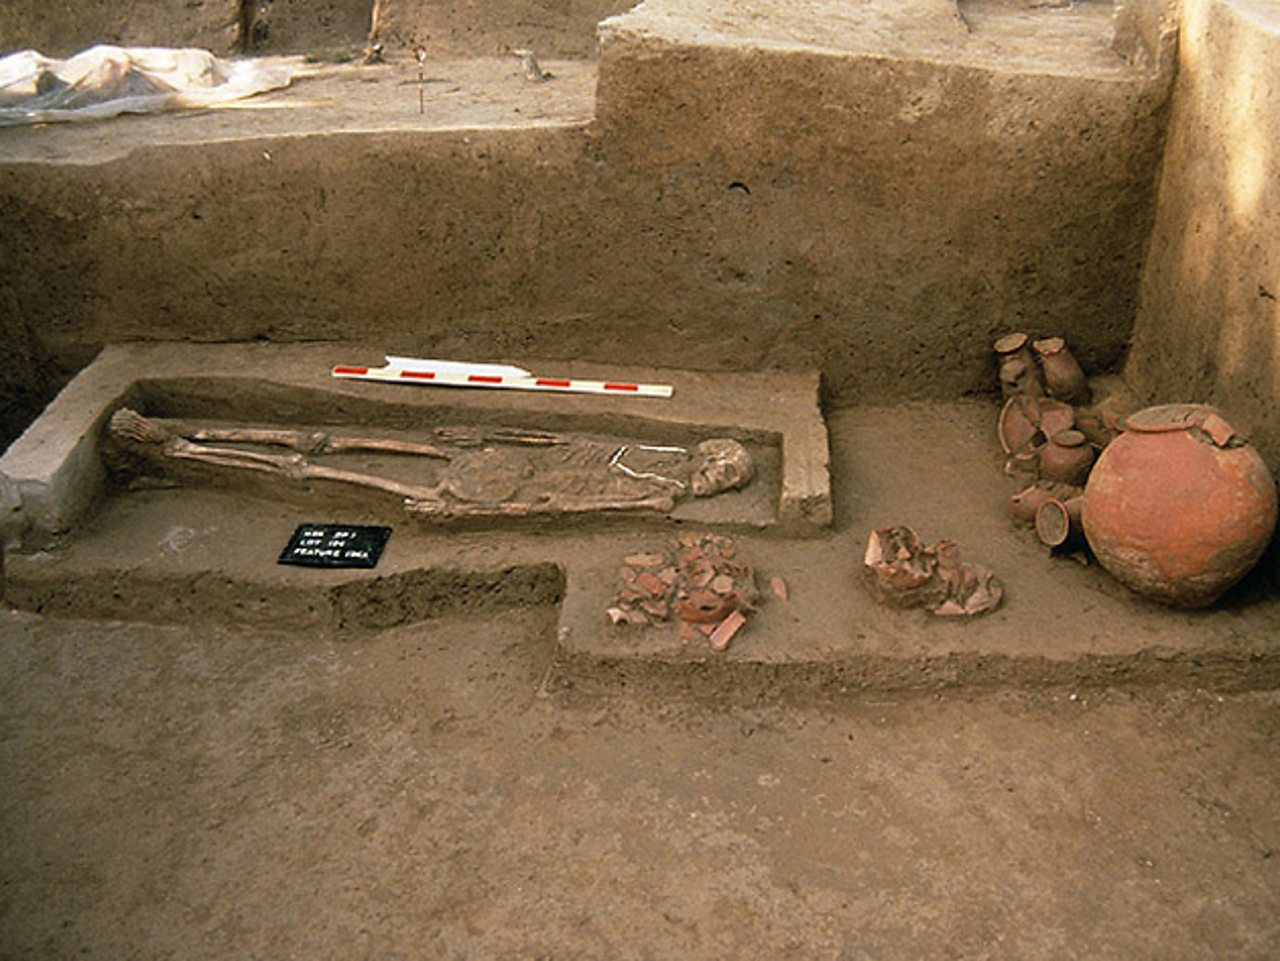 A skeleton and pottery found in the ruins of an Indus grave